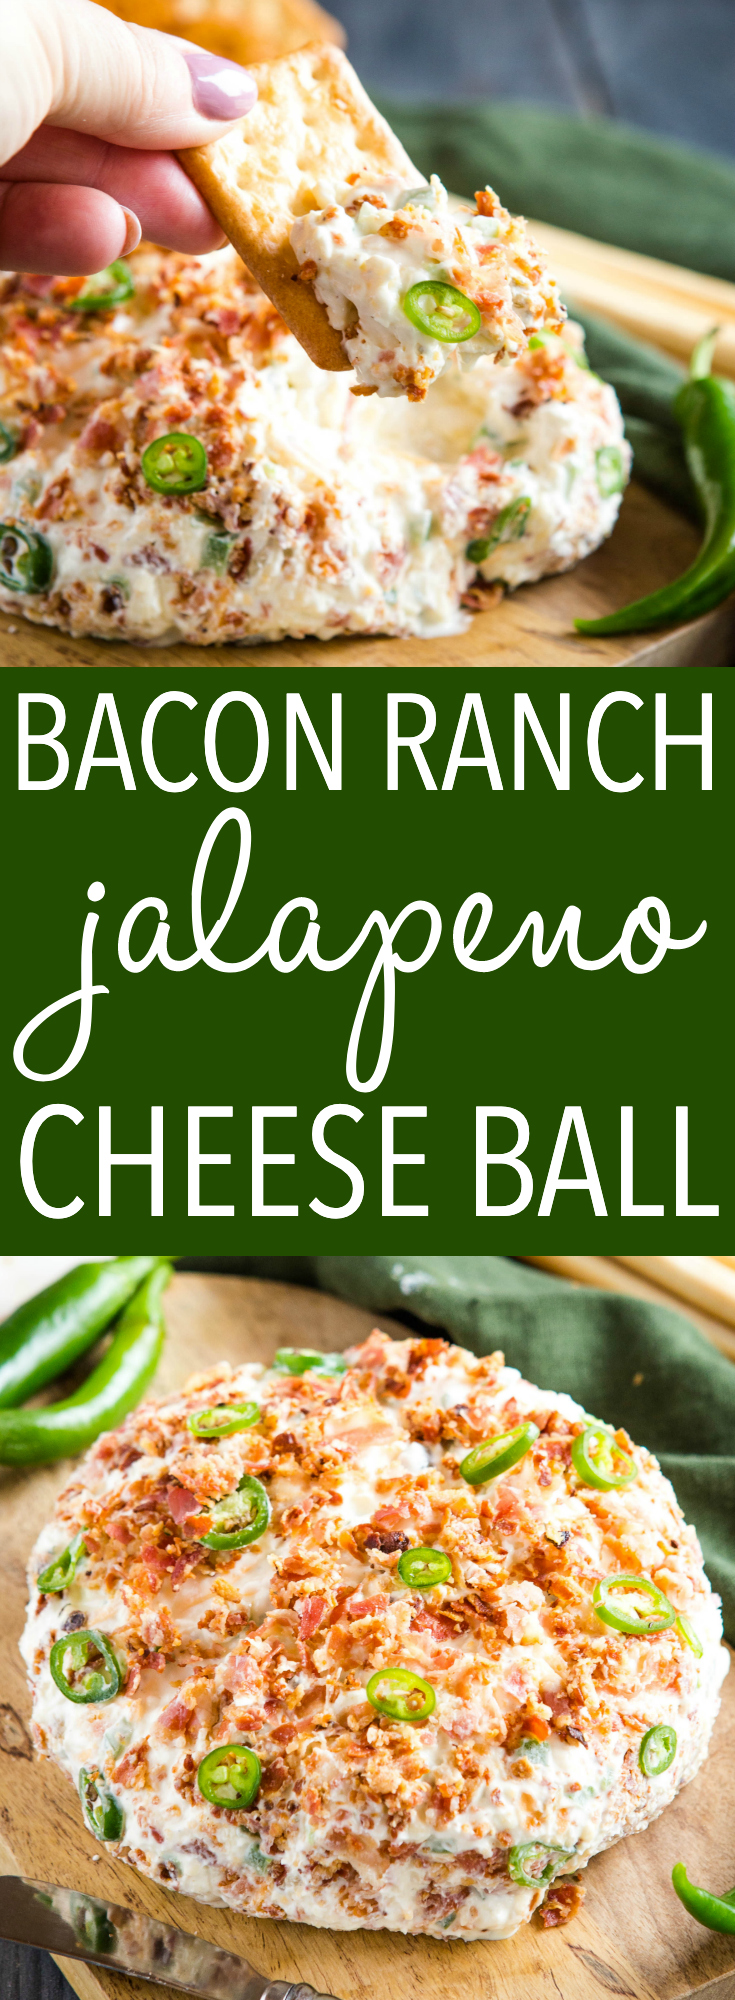 This Bacon Ranch Jalapeño Cheese Ball makes a delicious appetizer for holiday entertaining. It's easy to make with ranch dip mix, crumbled bacon, jalapeños and cheese!Recipe from thebusybaker.ca! #ranch #cheeseball #jalapeno #bacon #appetizer #newyearseve #gameday via @busybakerblog